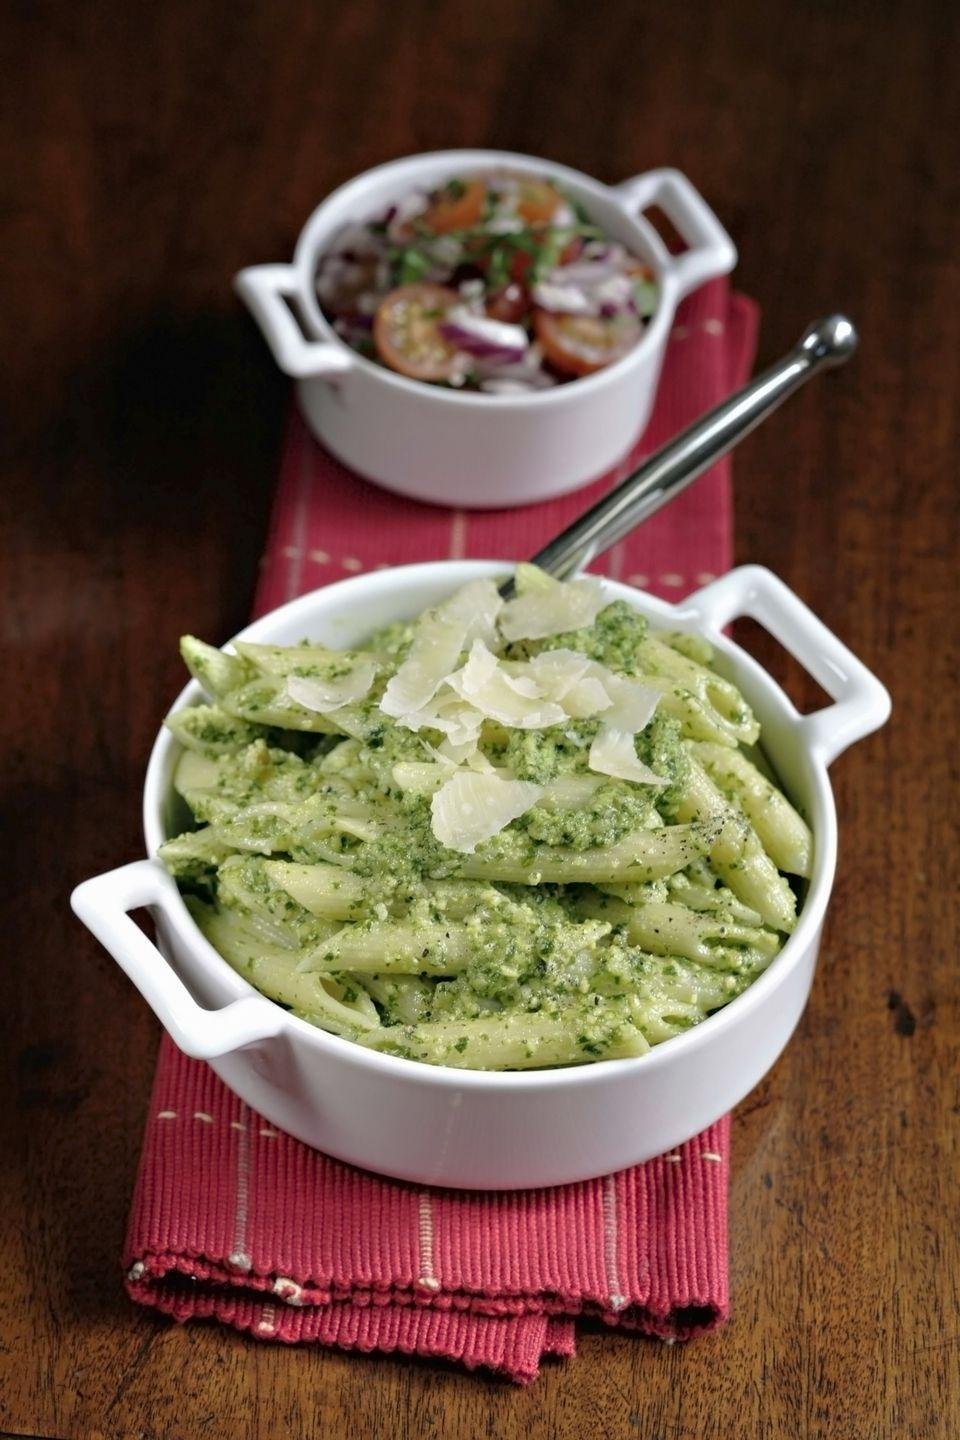 """<p>Verdant and versatile, pesto sauce is something every home cook should master. This version keeps it simple with baby spinach, salty pecorino, roasted almonds, and a bit of lemon for brightness.</p><p><a href=""""https://www.womansday.com/food-recipes/food-drinks/recipes/a11886/spinach-pesto-with-pasta-recipe/"""" rel=""""nofollow noopener"""" target=""""_blank"""" data-ylk=""""slk:Get the Spinach Pesto with Pasta recipe."""" class=""""link rapid-noclick-resp""""><em>Get the Spinach Pesto with Pasta recipe.</em></a></p>"""